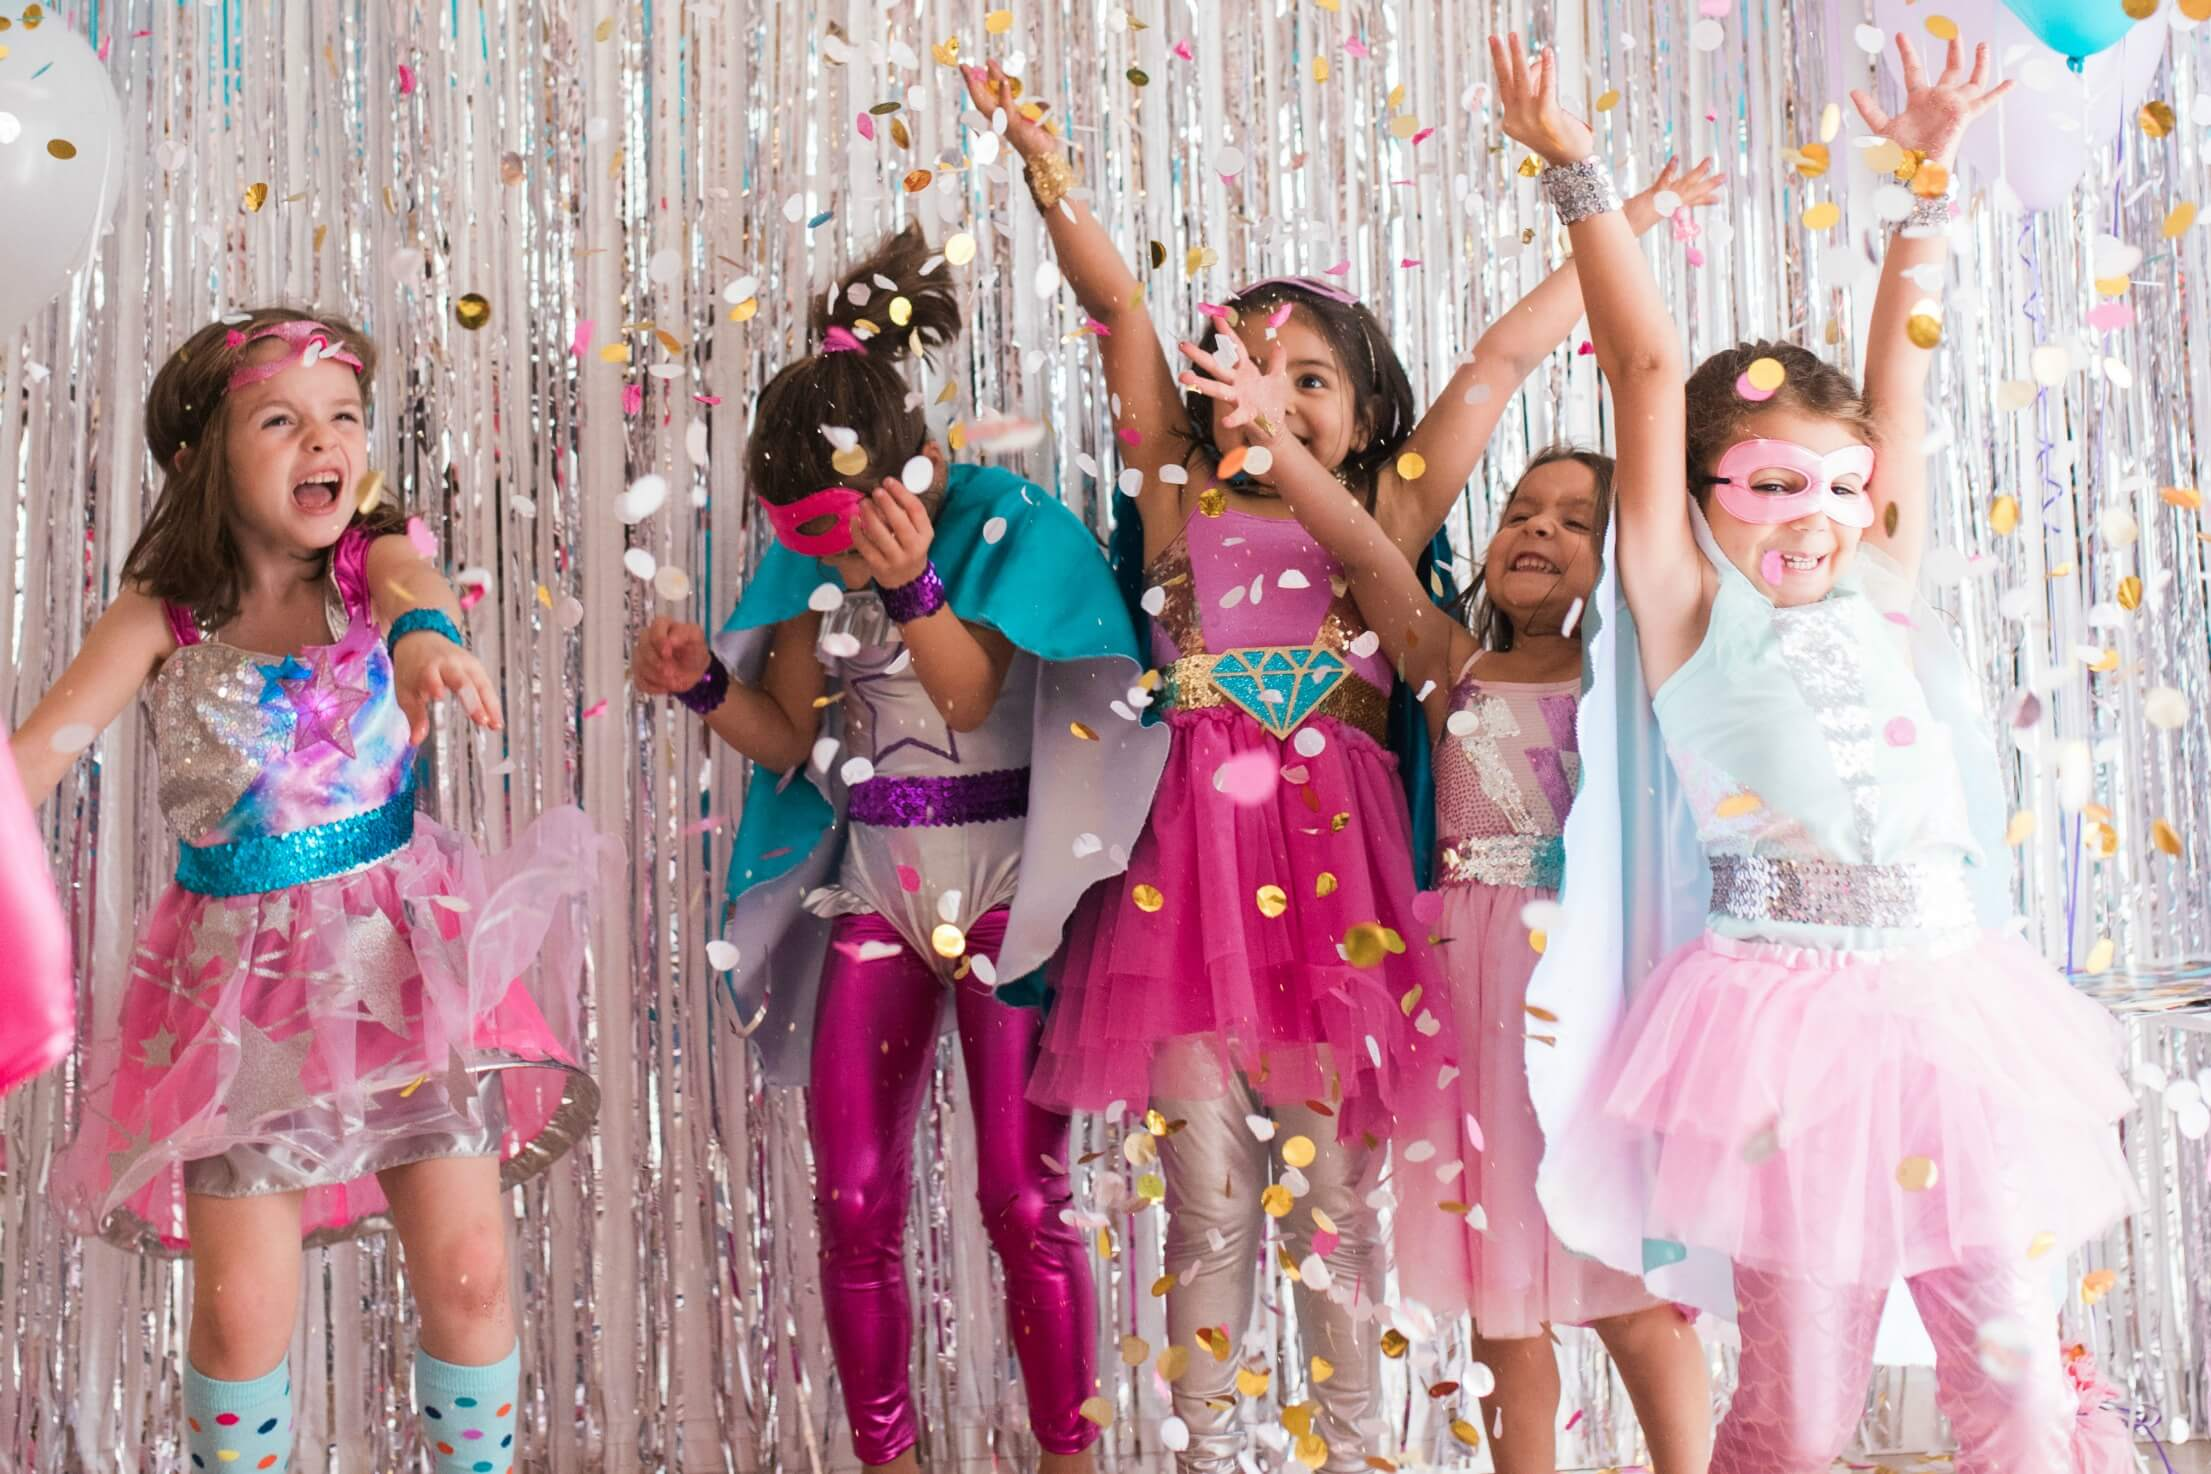 Https://www.shindigz.com/super-hero-birthday-party-for-girls?utm_source=pinterest&utm_medium=social&utm_campaign=szsupersparkle01182017